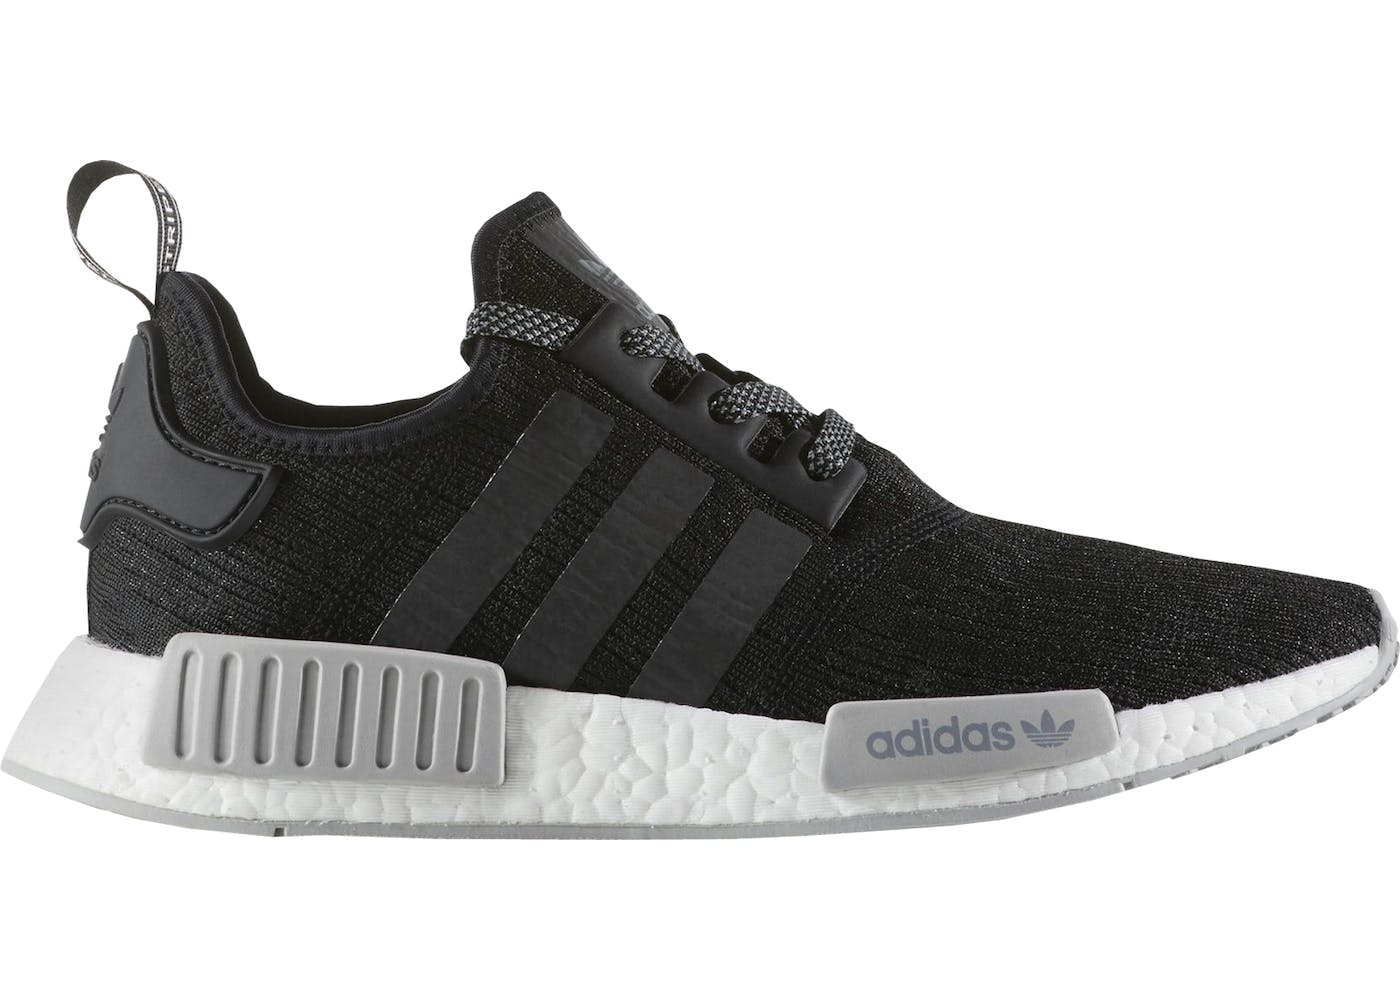 adidas Originals NMD R1 Primeknit Trainer Black / White / Gum